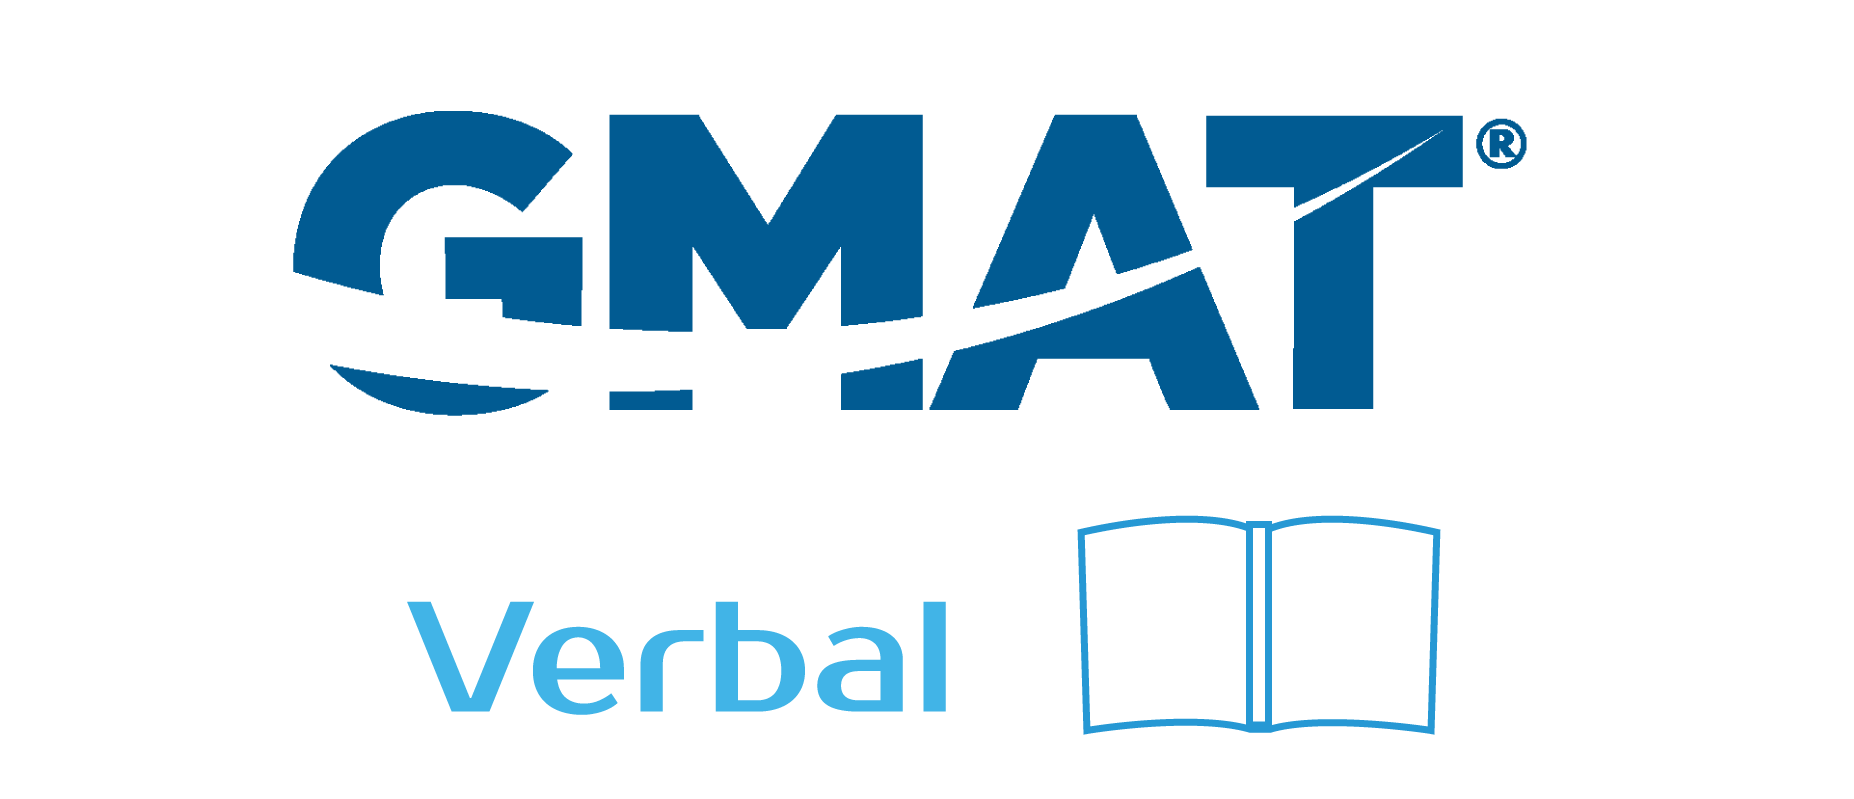 GMAT-verbal-englobex-course